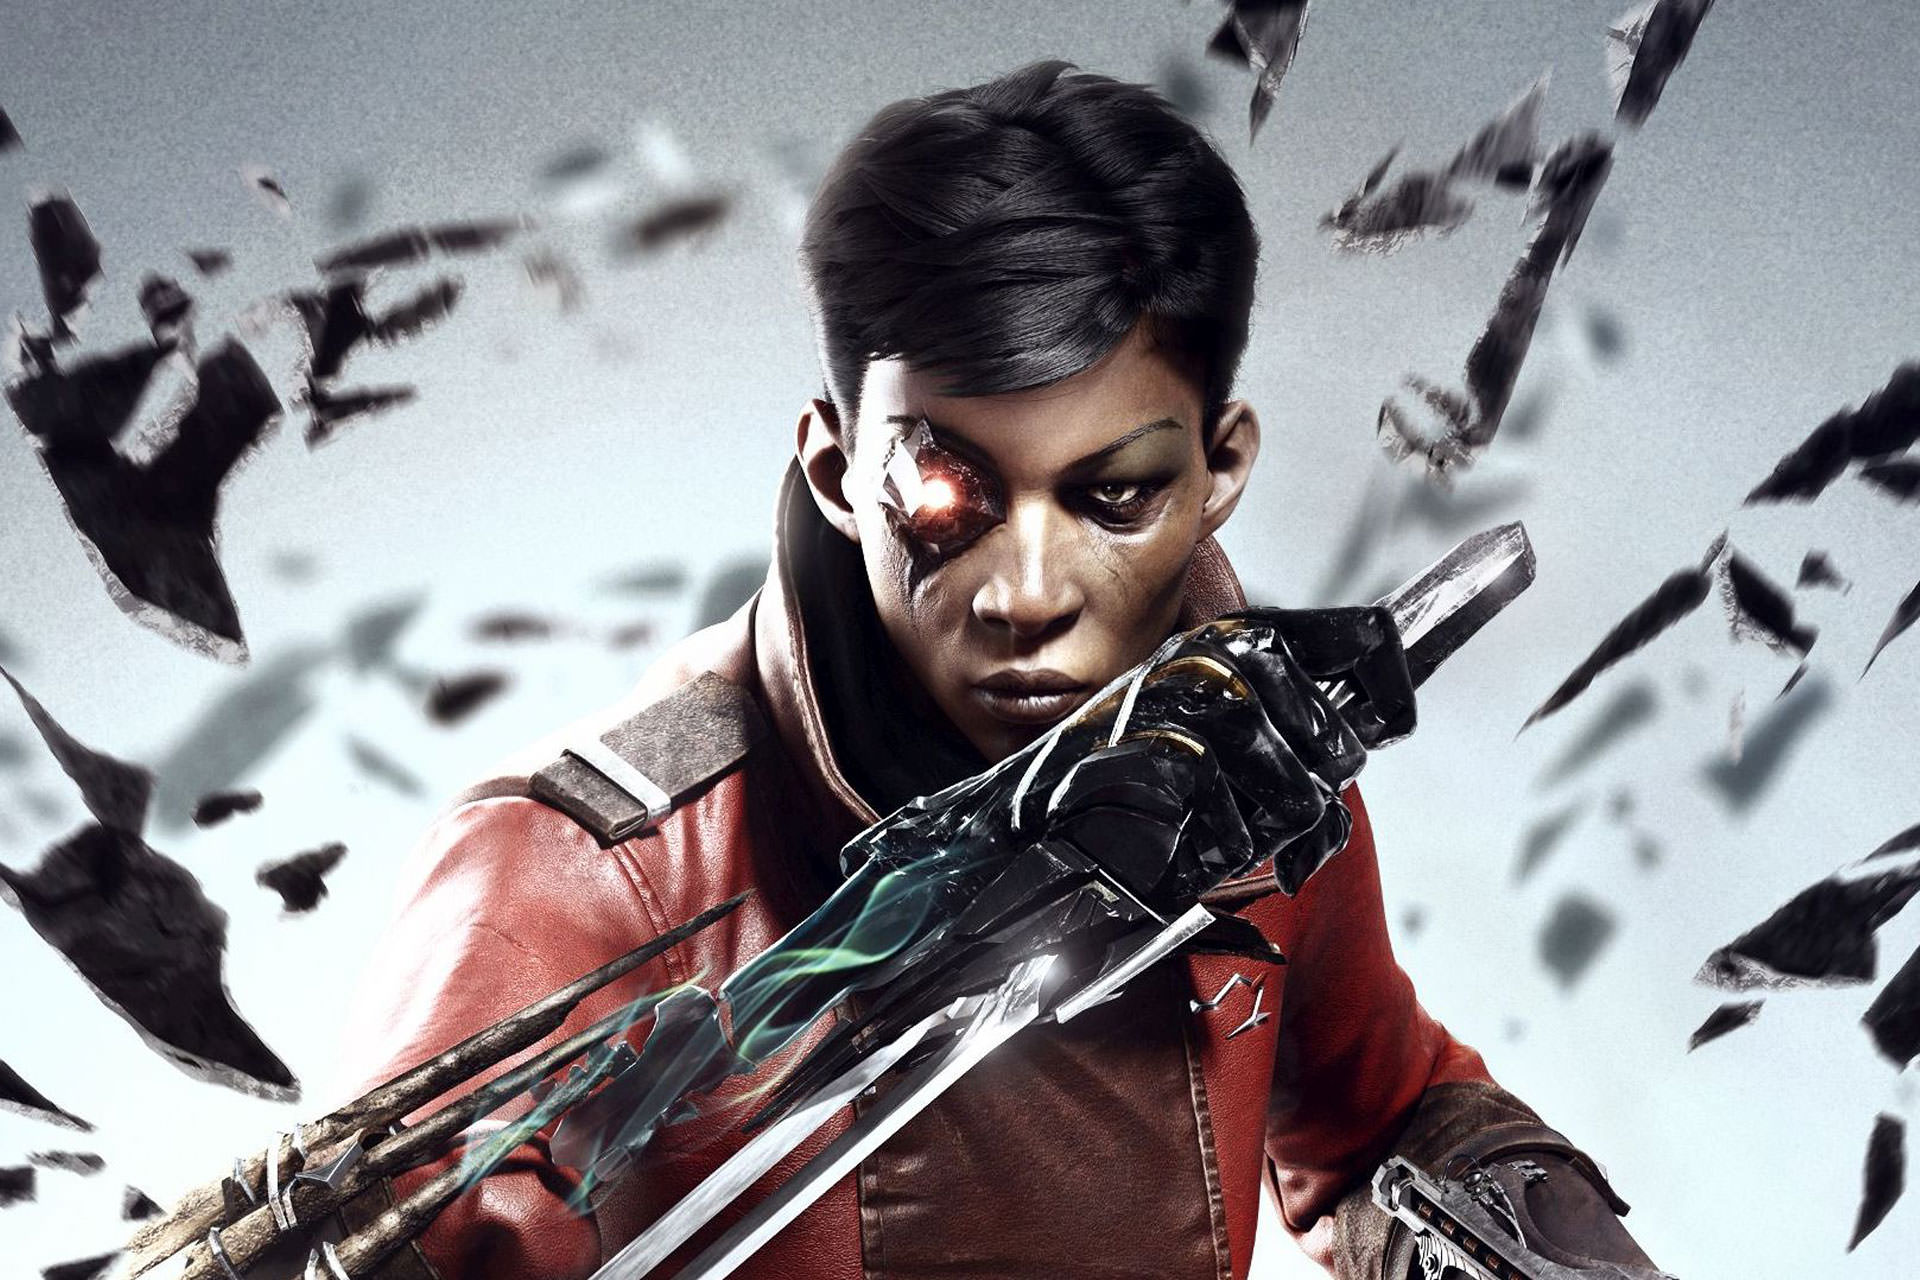 بررسی بازی Dishonored: Death of the Outsider